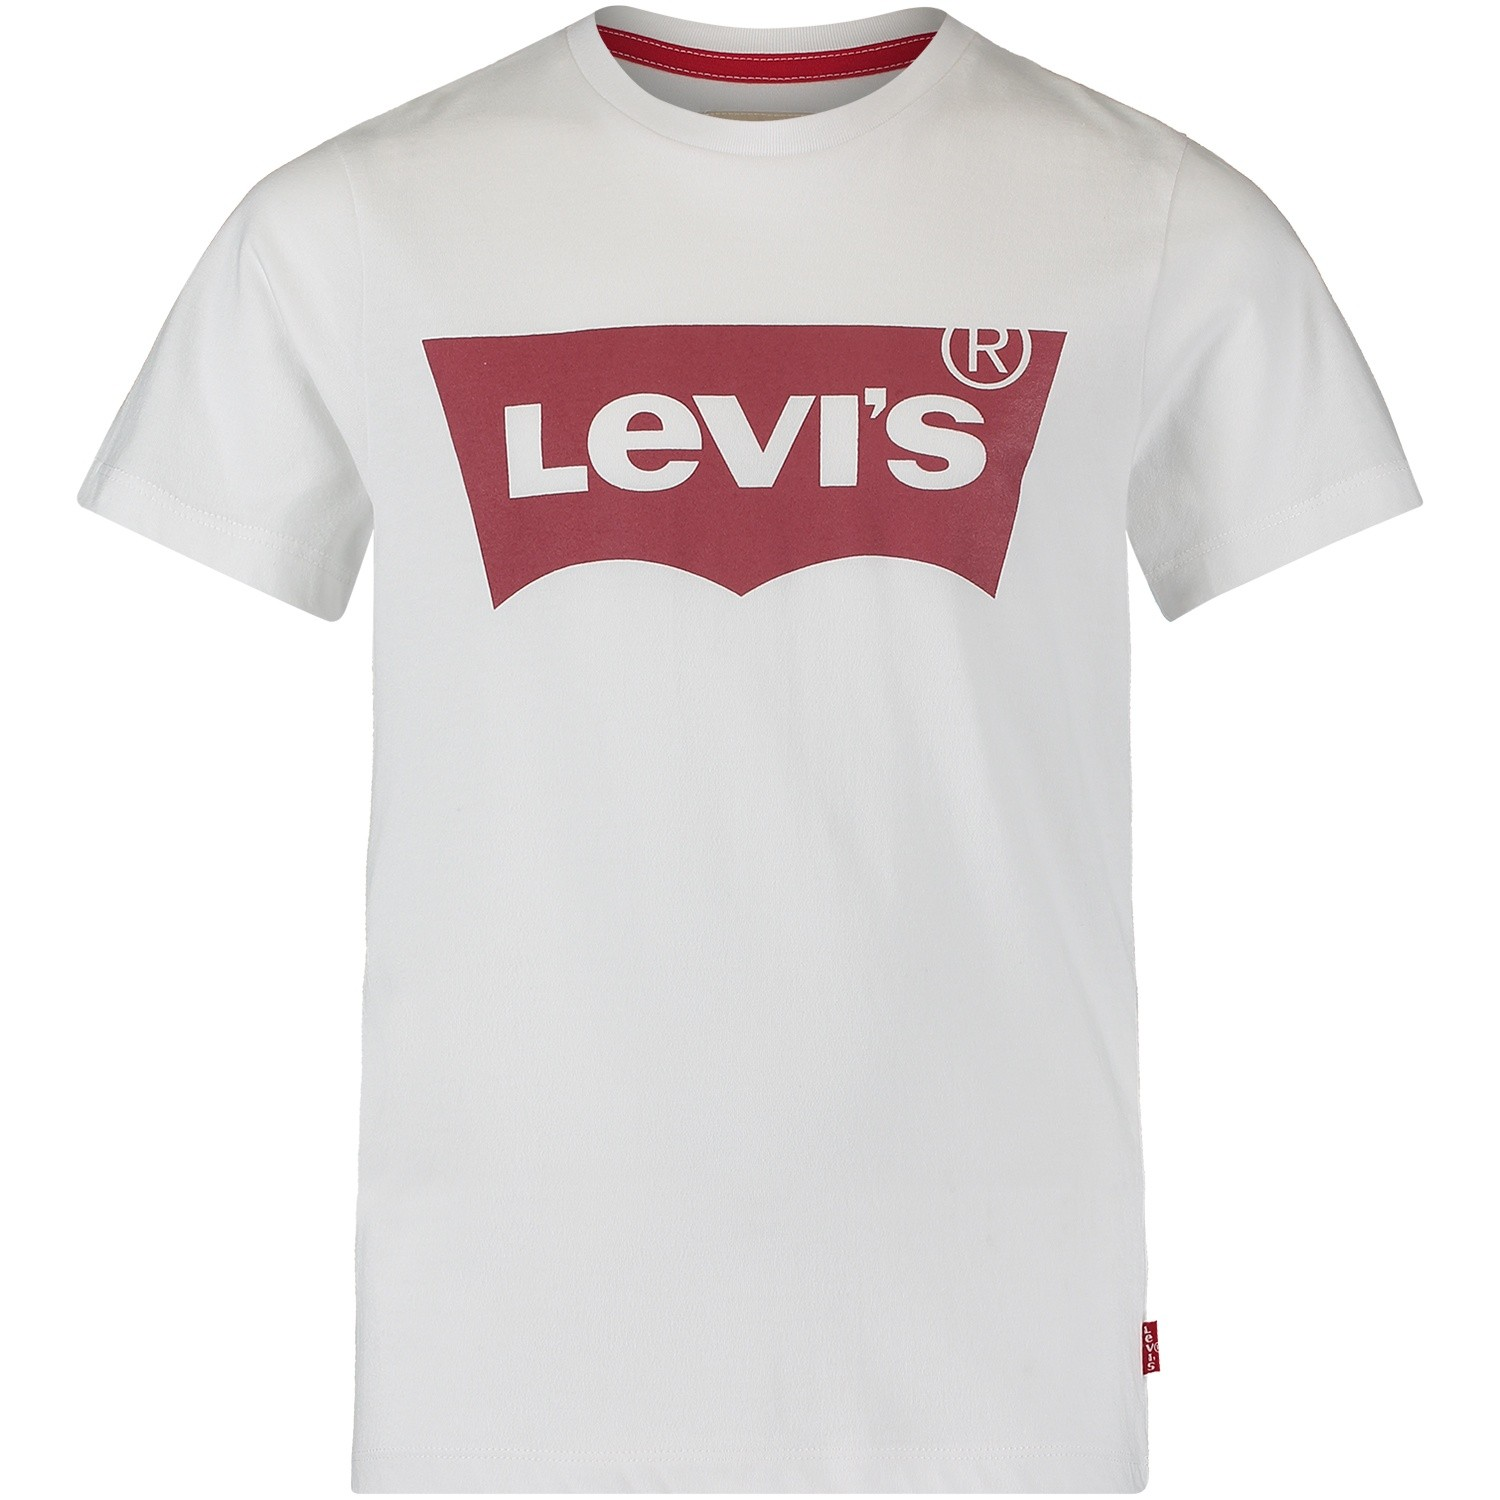 Picture of Levi's N91004H kids t-shirt white